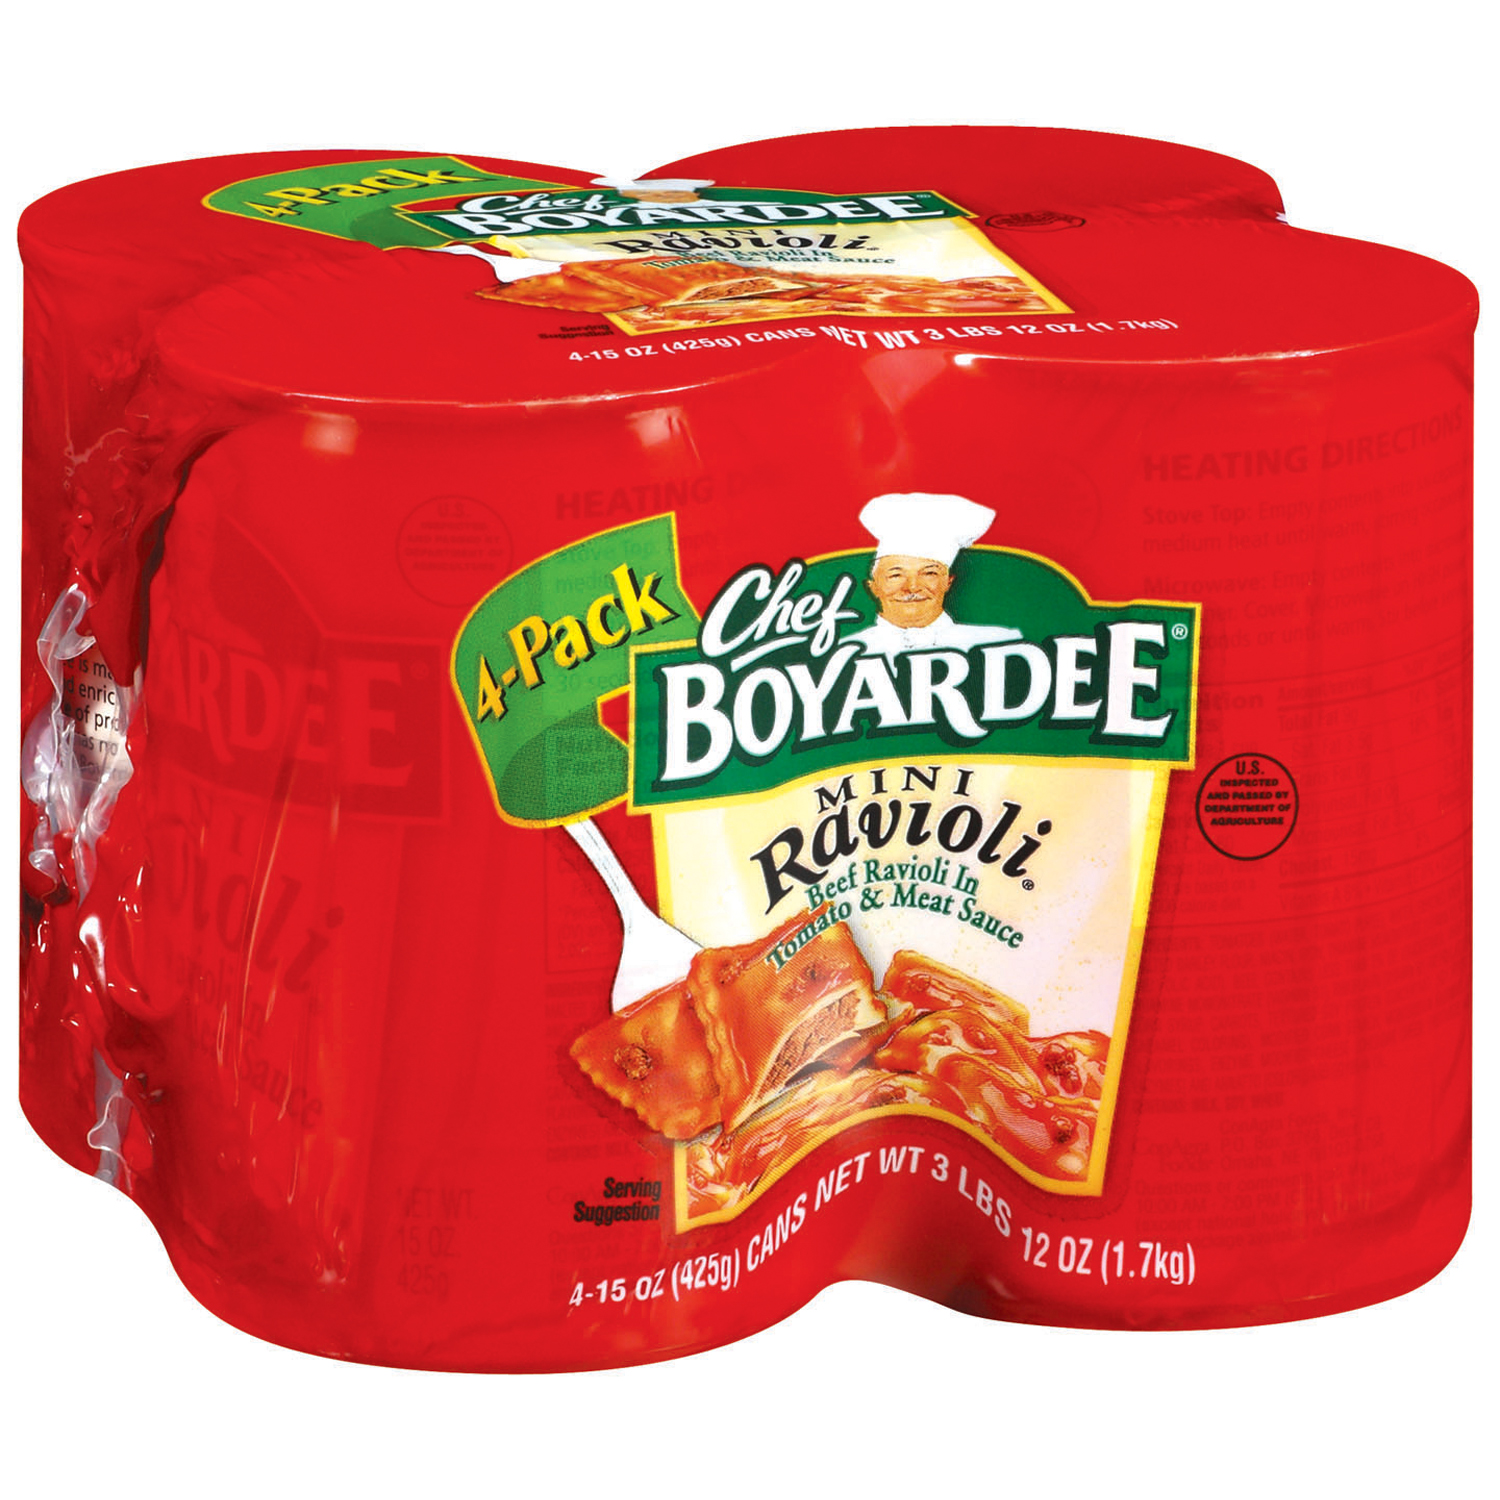 Chef Boyardee Mini Beef Ravioli in Tomato & Meat Sauce, 4-Pack by ConAgra Foods Inc.